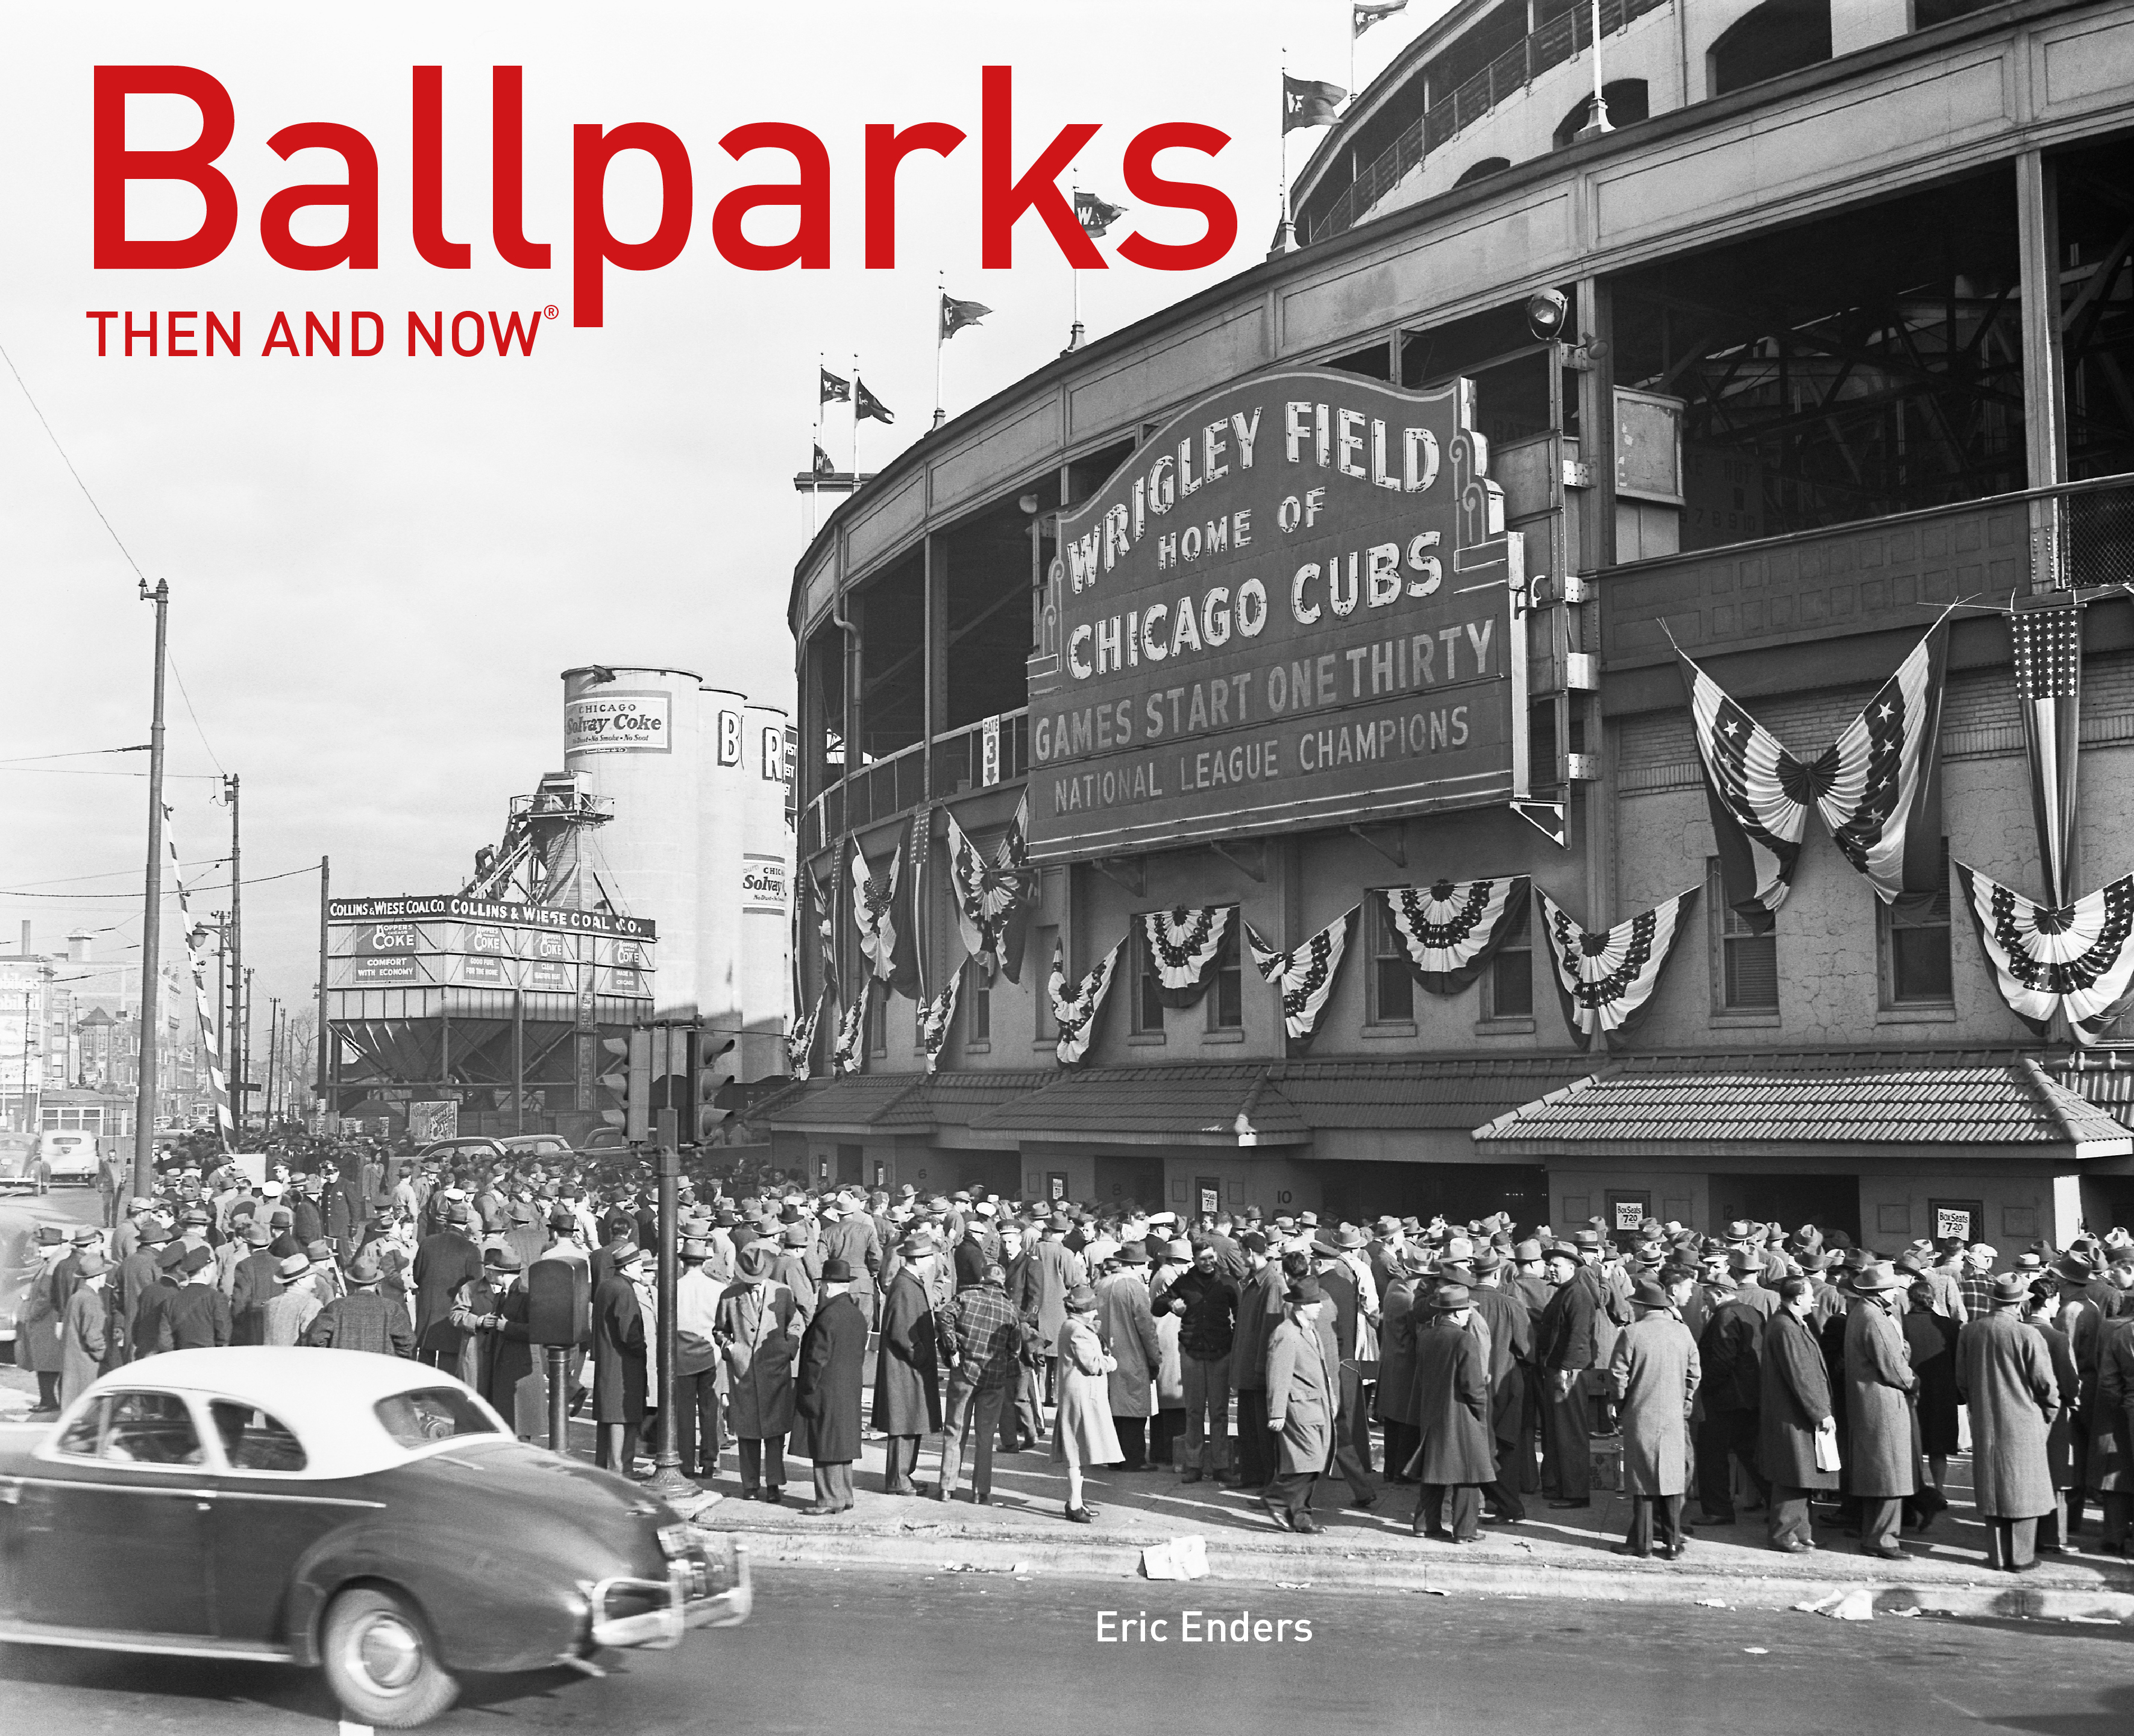 Ballparks Then and Now®